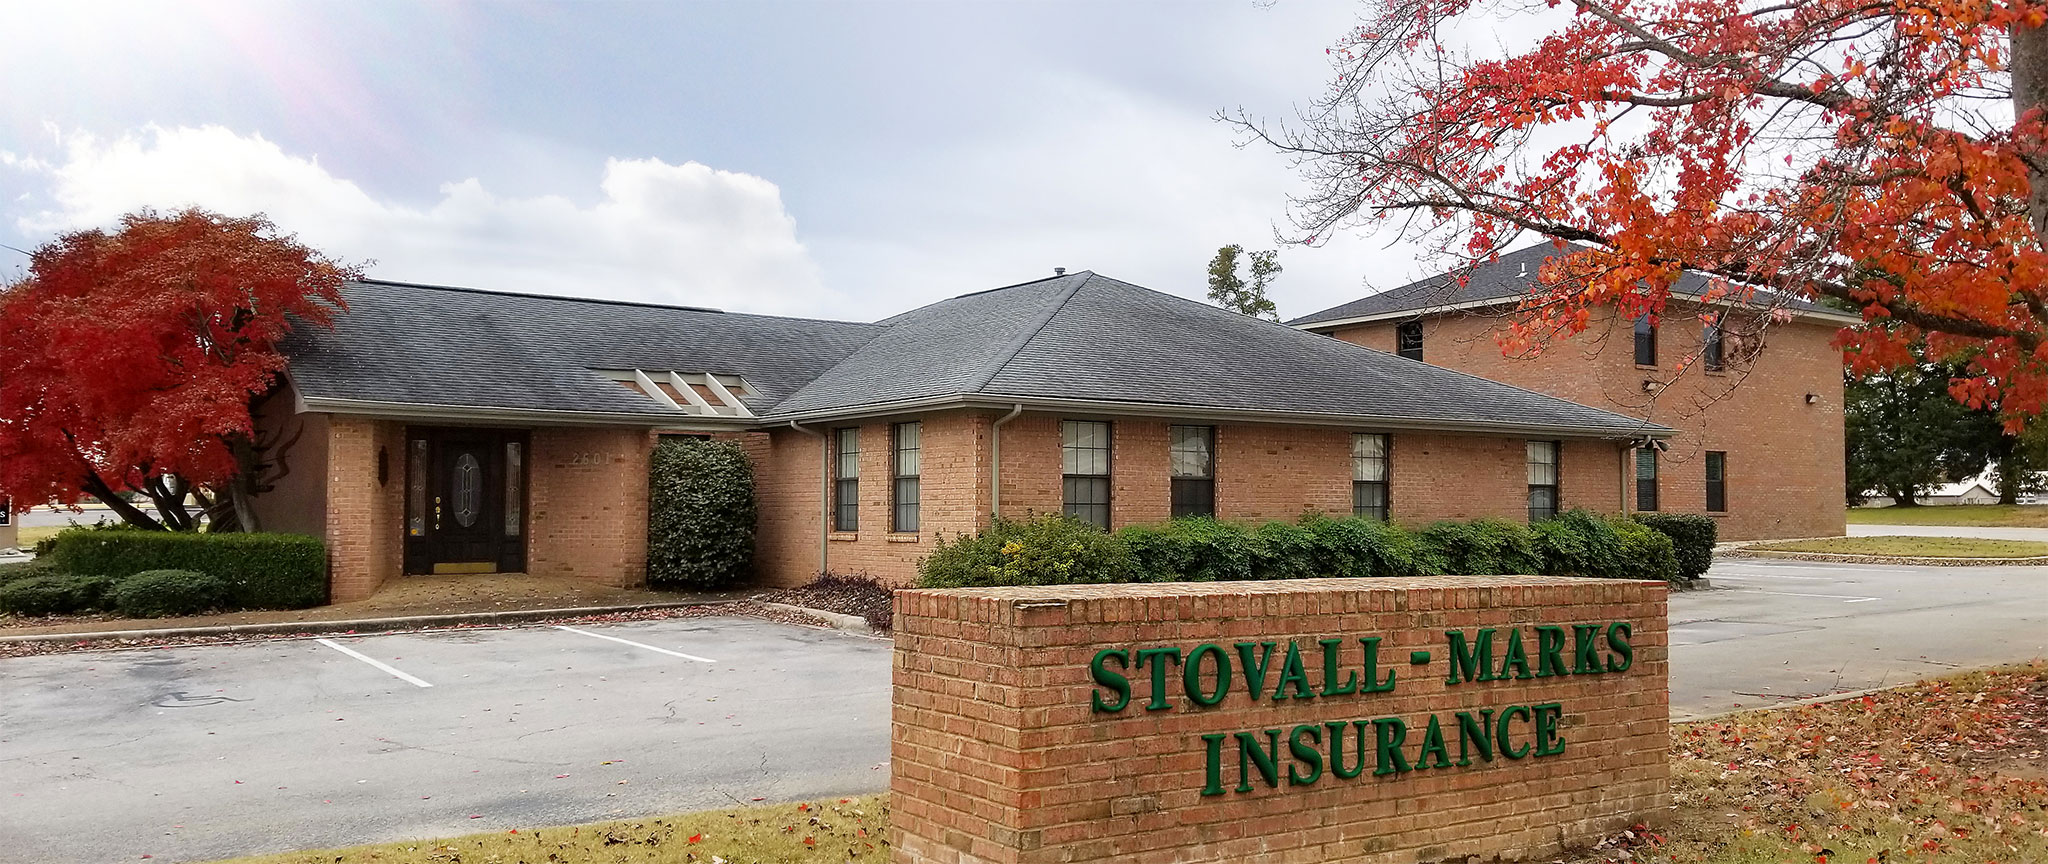 Stovall Marks Insurance located in Decatur, AL.